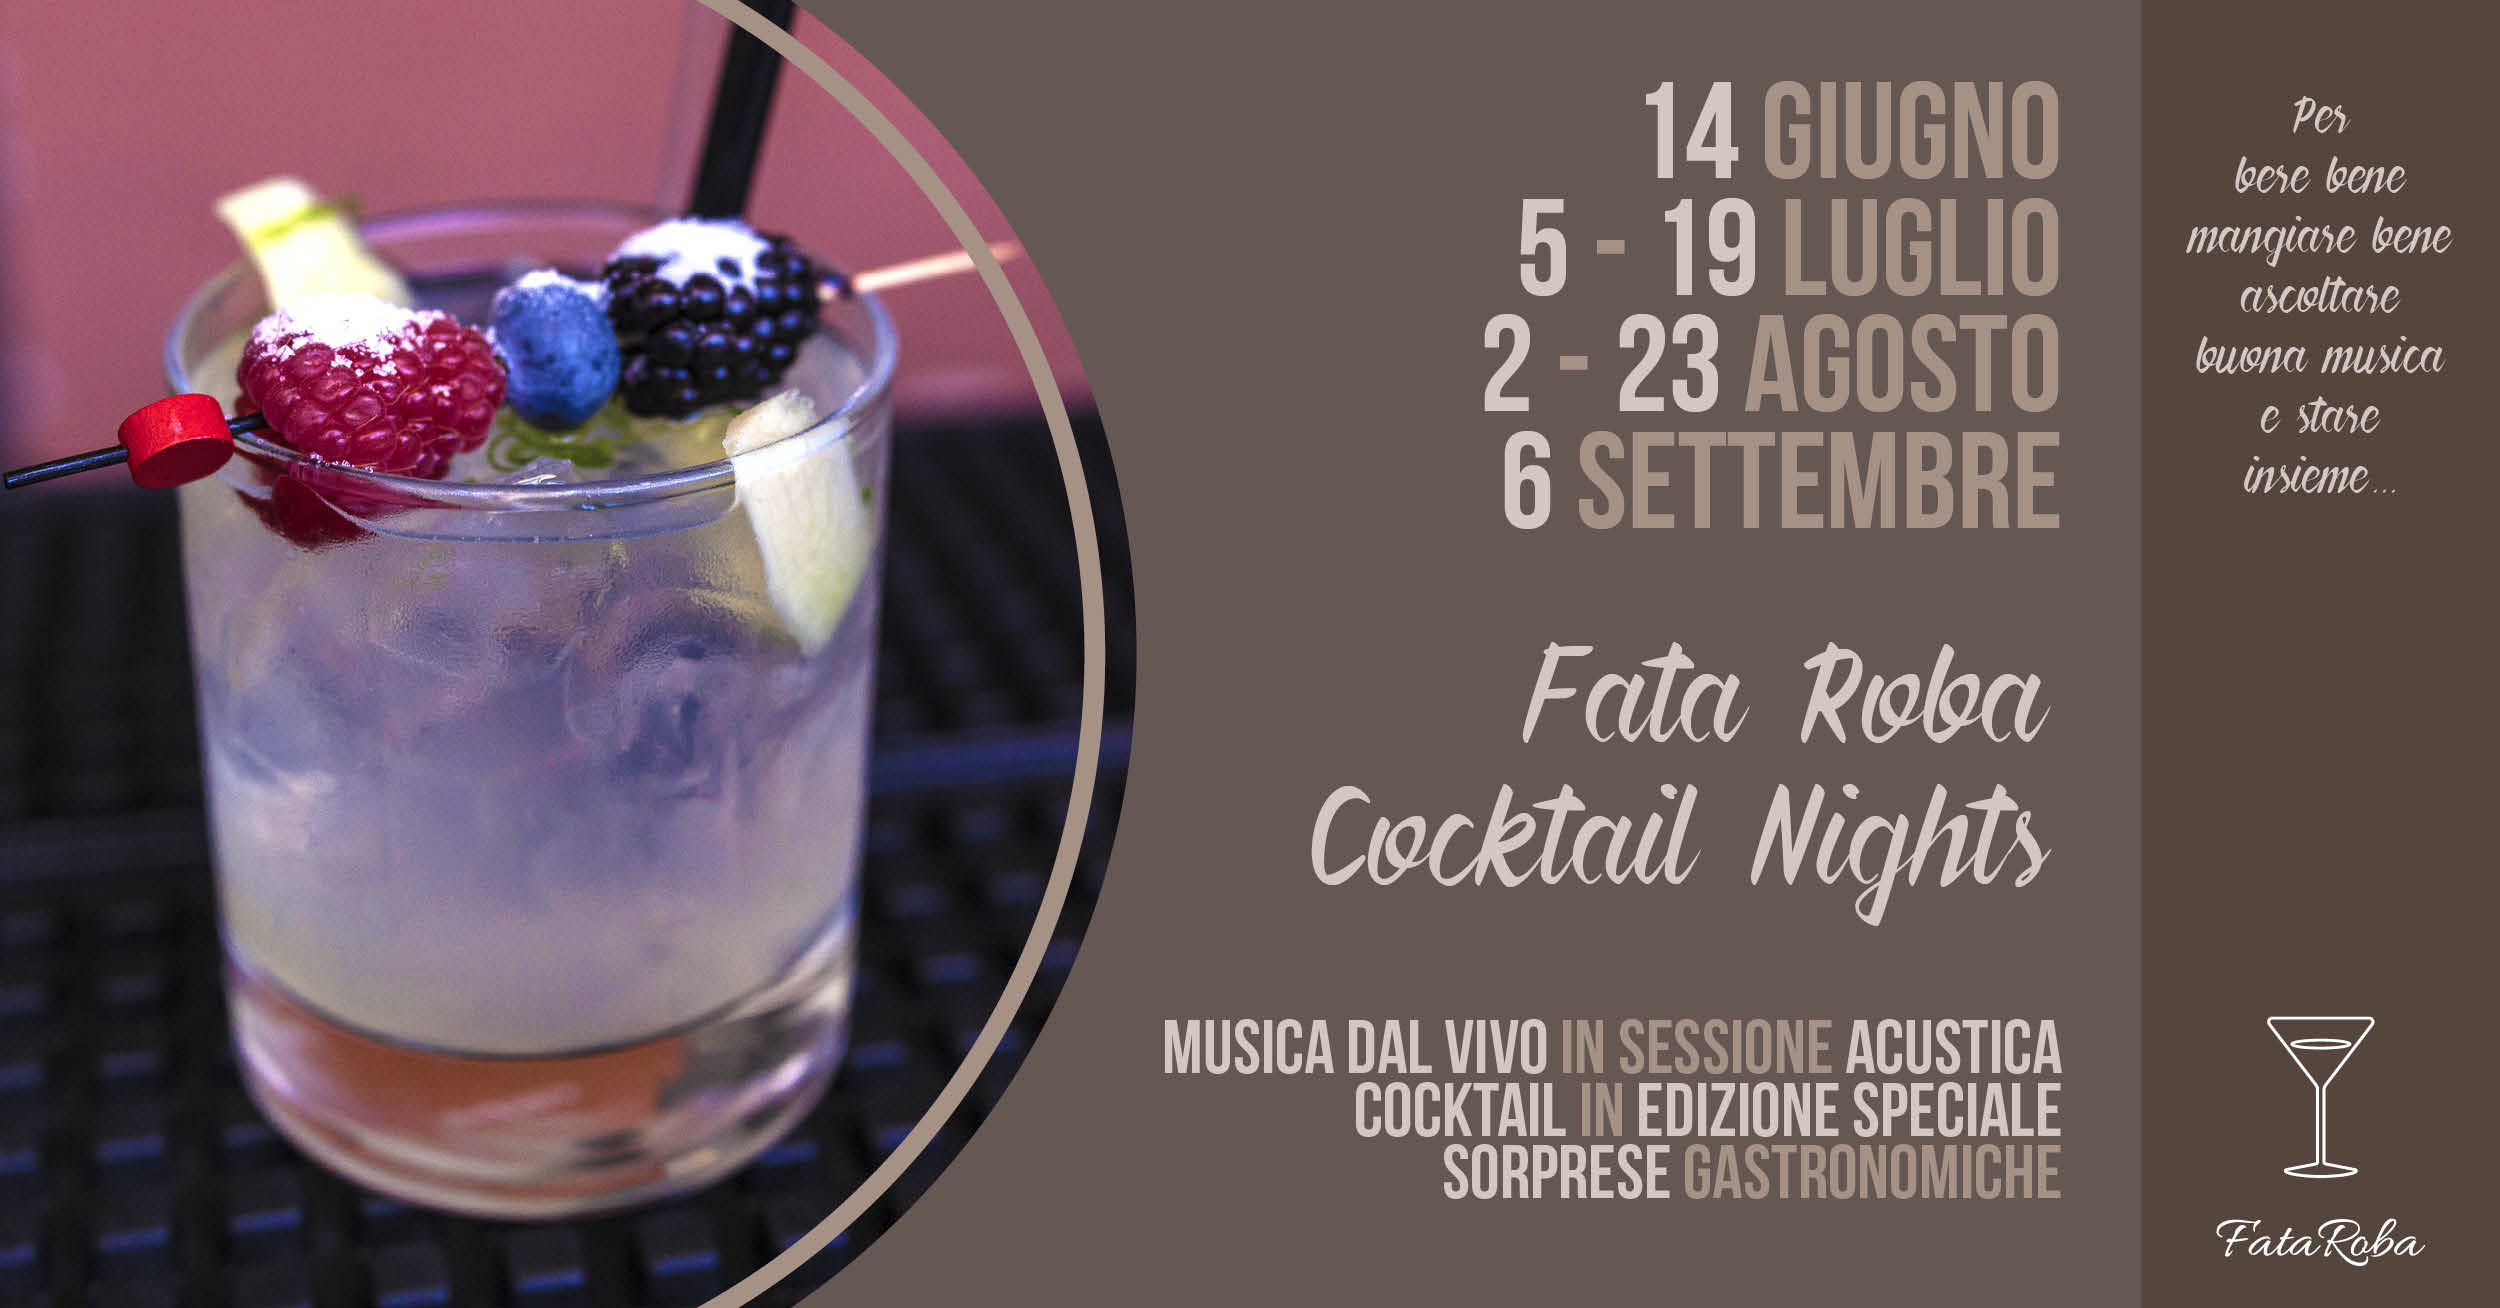 Fata Roba Cocktail Nights